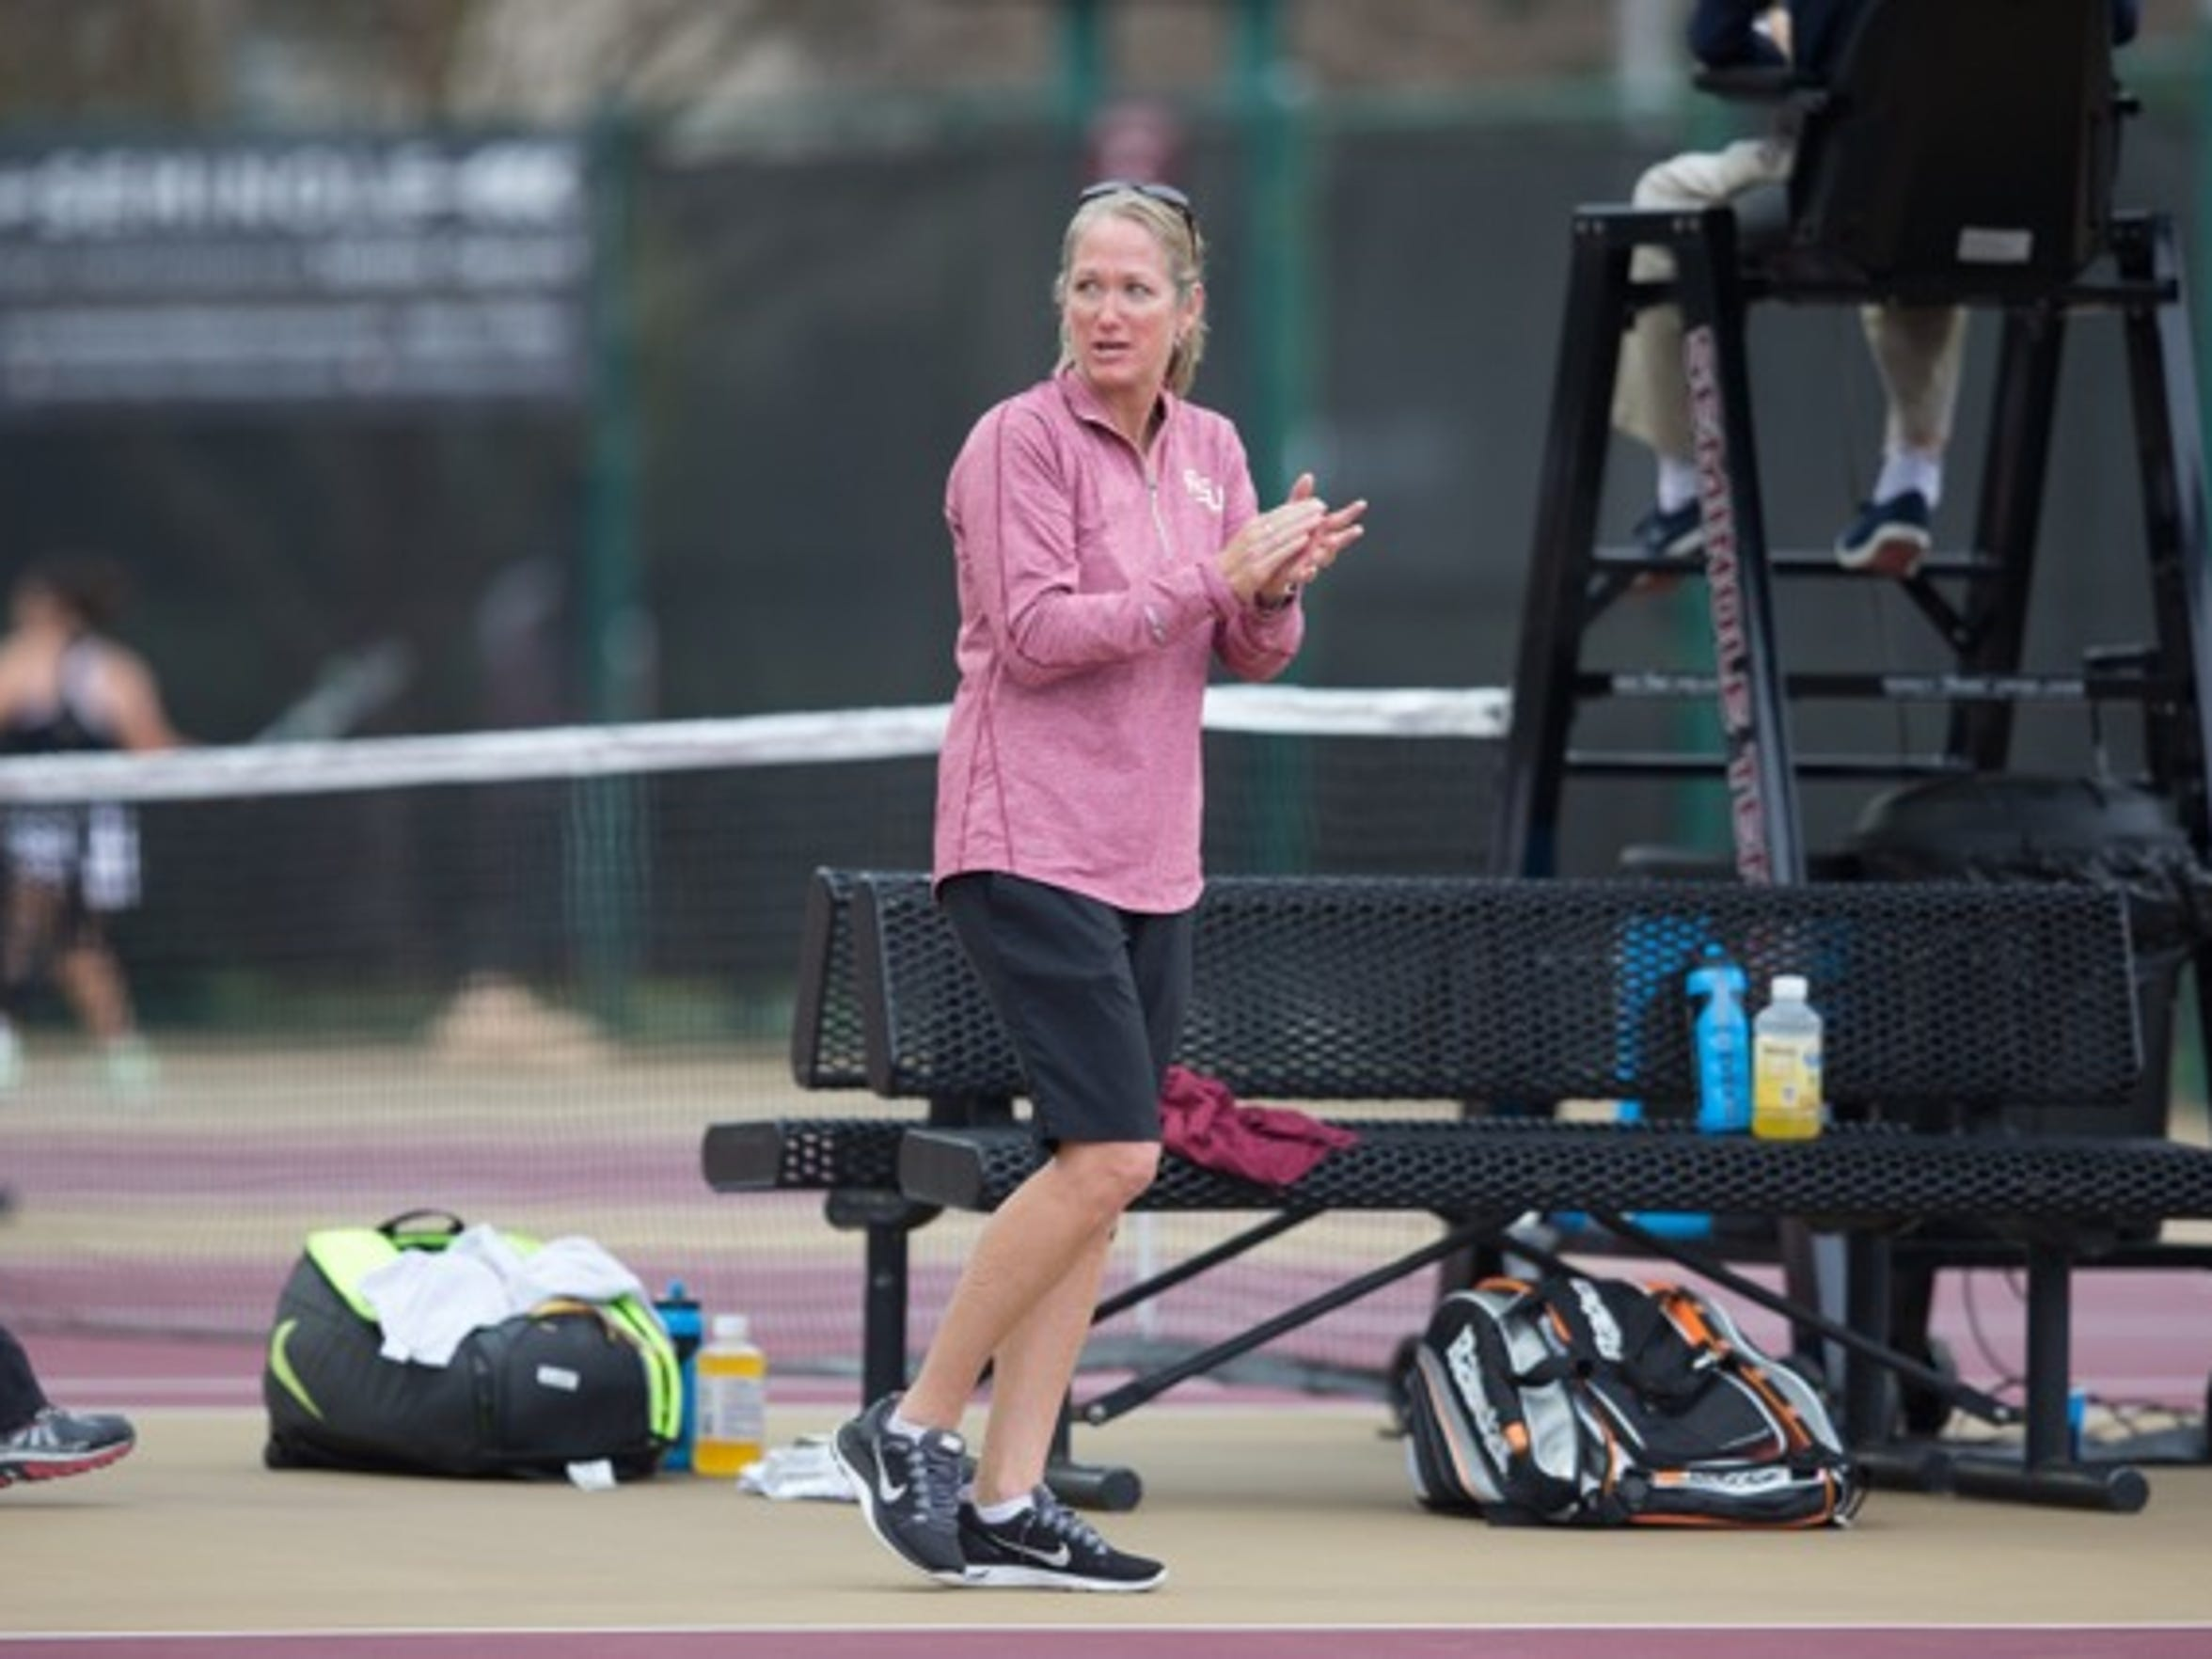 Over the years, Florida State head coach Jennifer Hyde has developed a team which lives and breeds off one another.